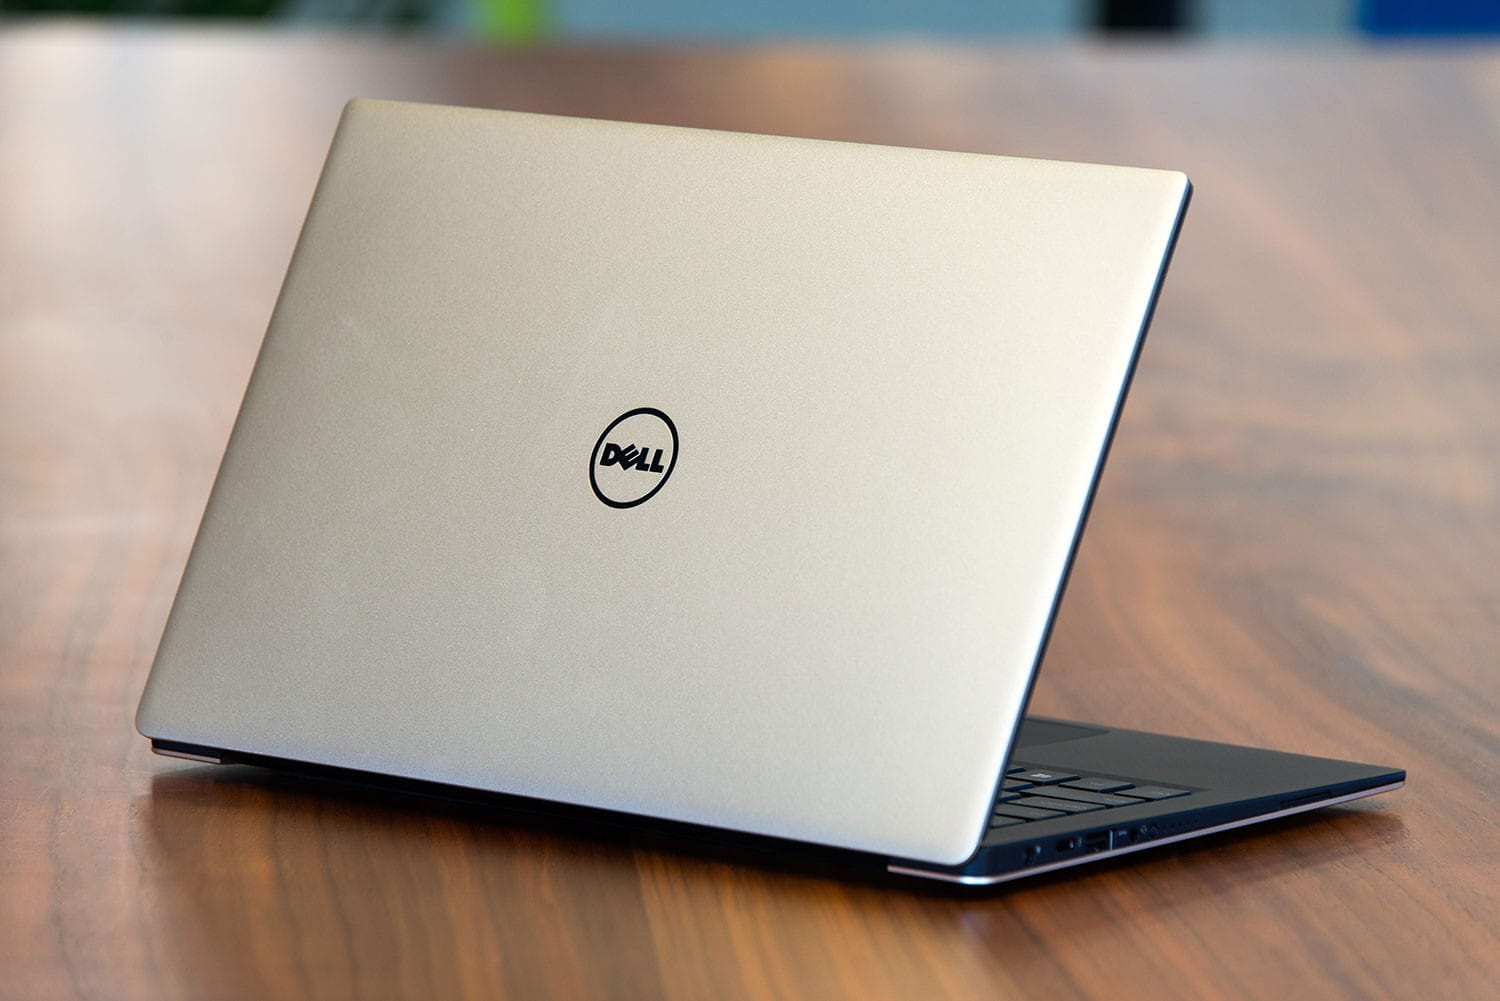 dell-xps-13-gold-lid2-3-1500×1001-1